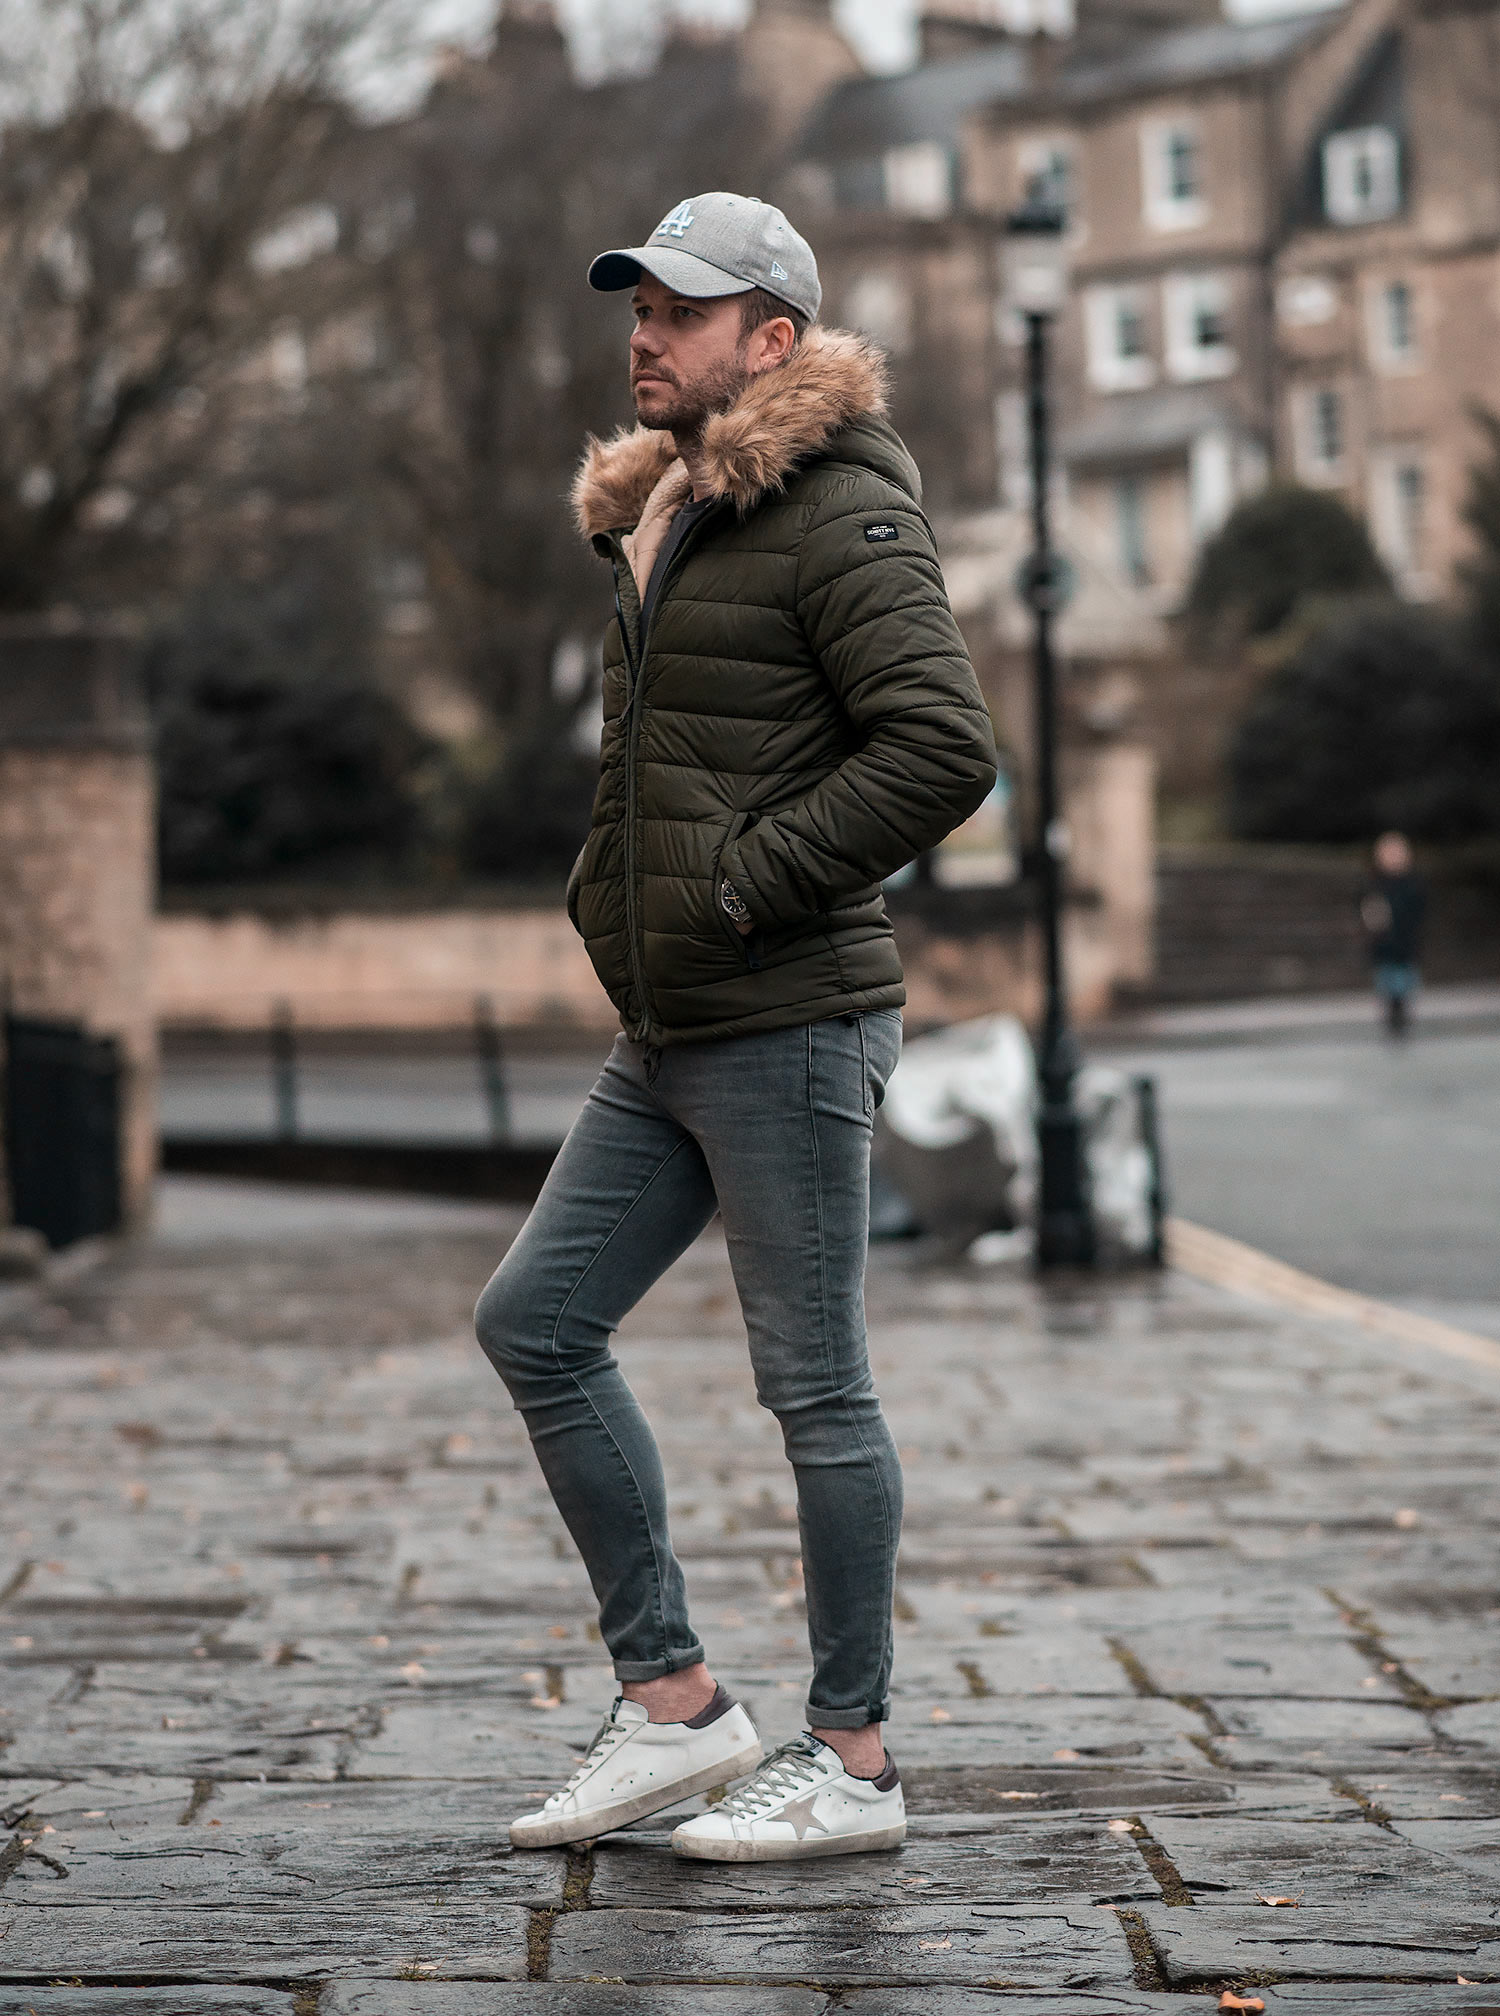 Golden Goose Sneakers Outfit Post